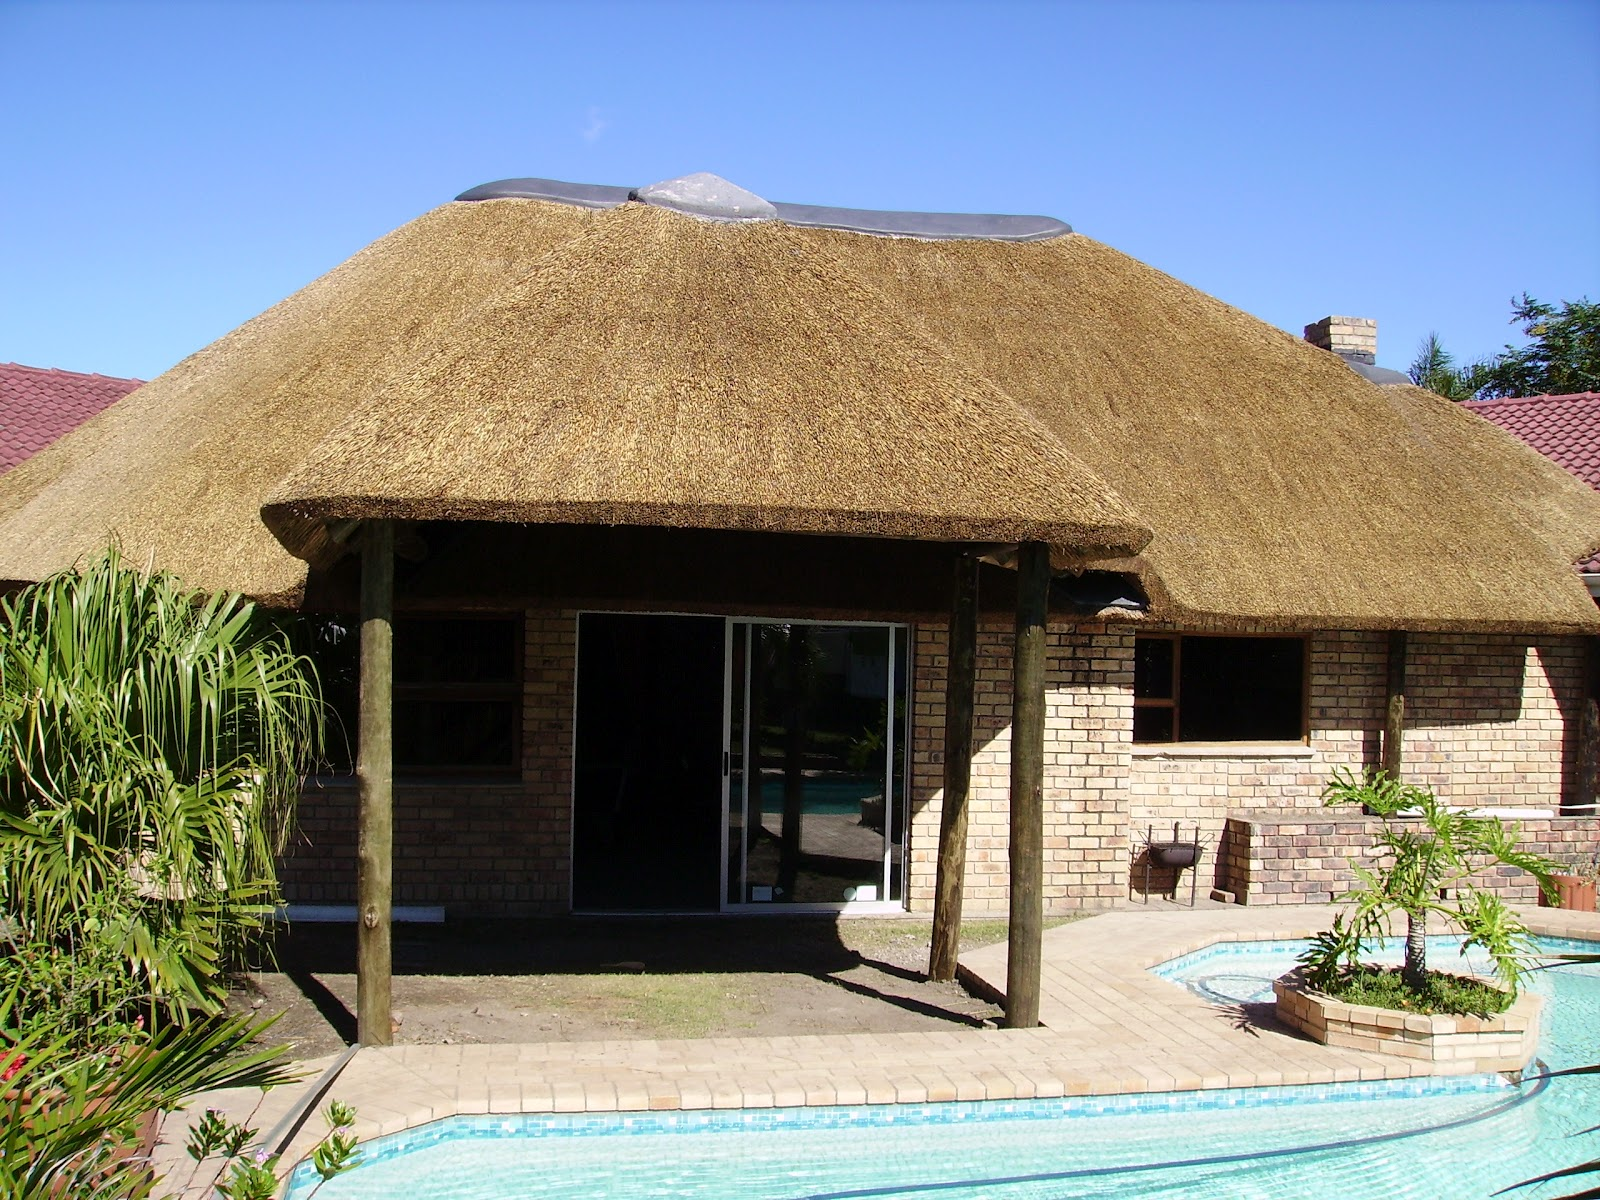 thatch-lapa-designs+(10) Single Rooms House Plans Kenya on single room interior design, single room decorating, single room hotels, single room home, single room lighting, single room additions, single room bathroom, single room heating, single person house,